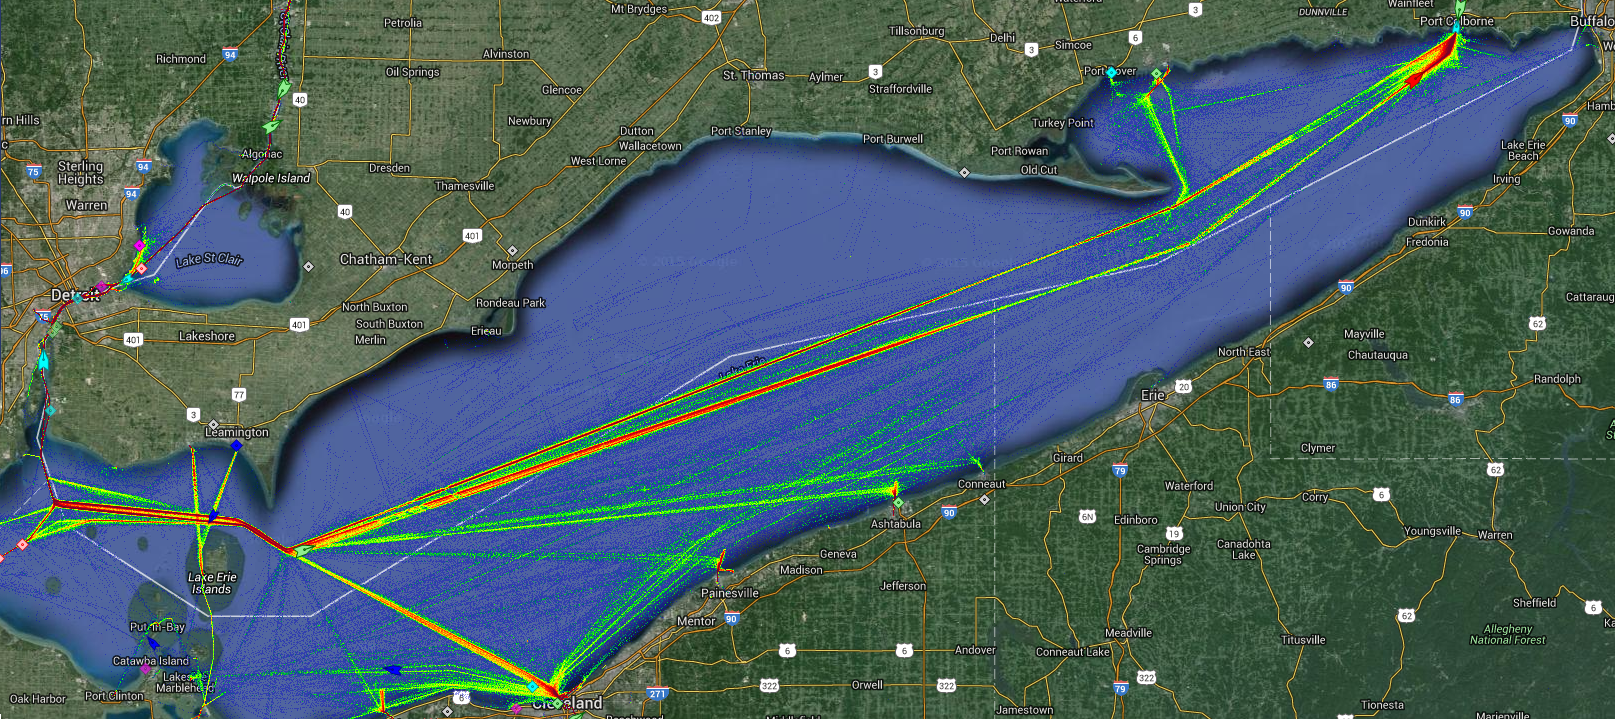 Live Marine Traffic, Density Map and Current Position of ships in LAKE ERIE